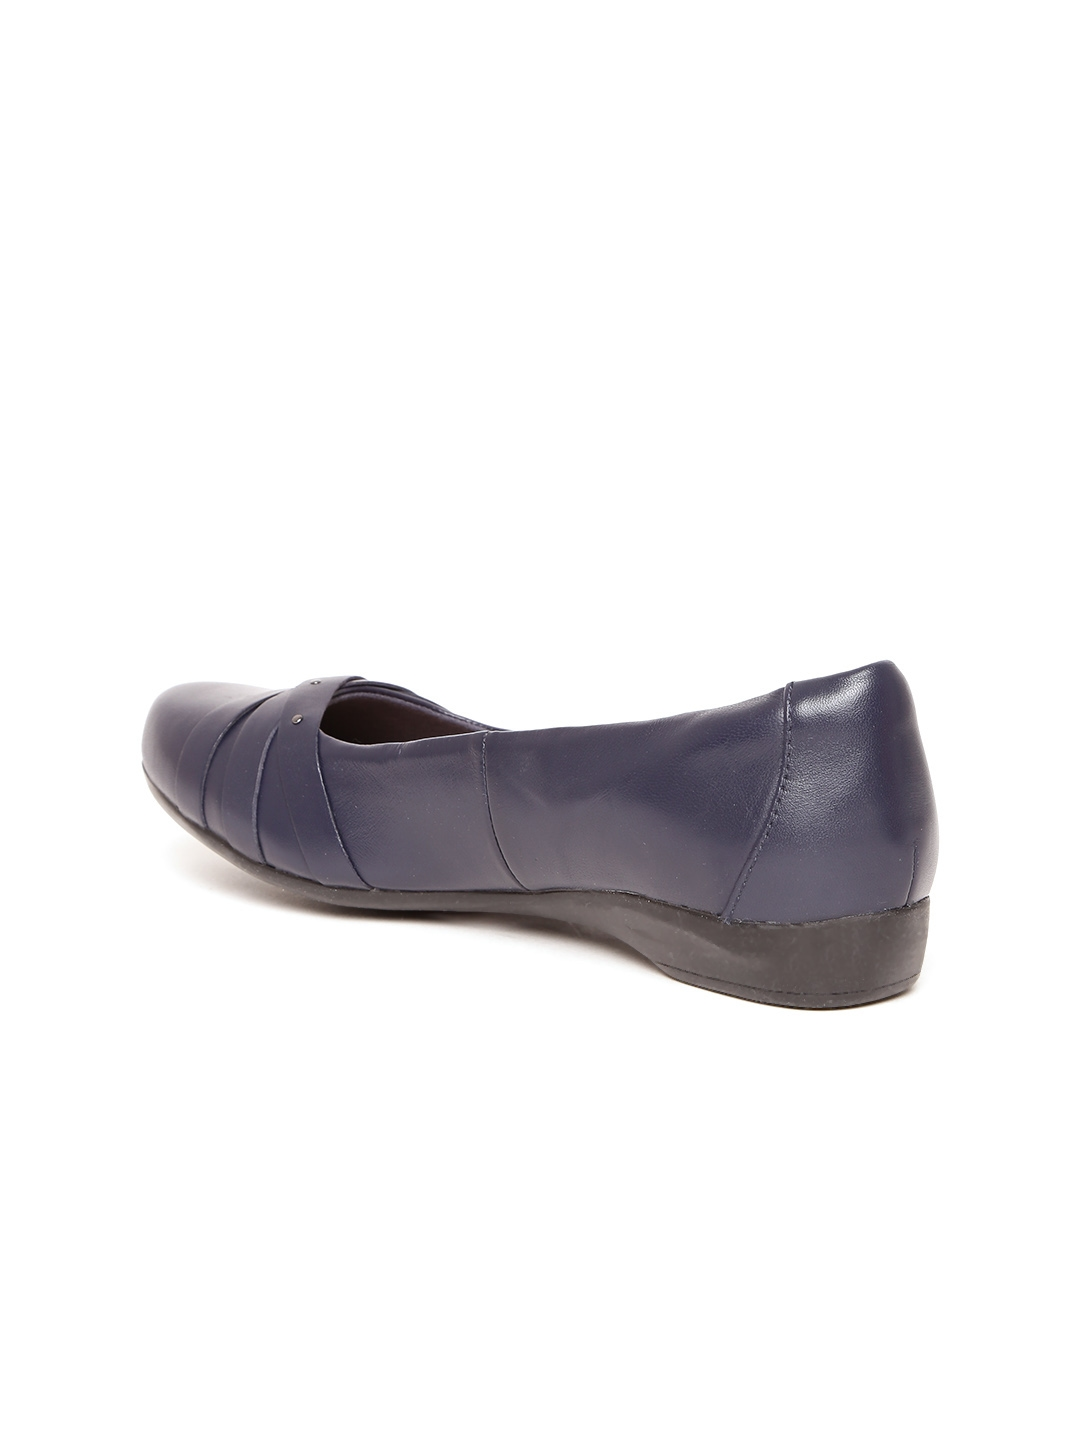 be9fe647e Buy Clarks Women Navy Blue Solid Leather Ballerinas - Flats for ...